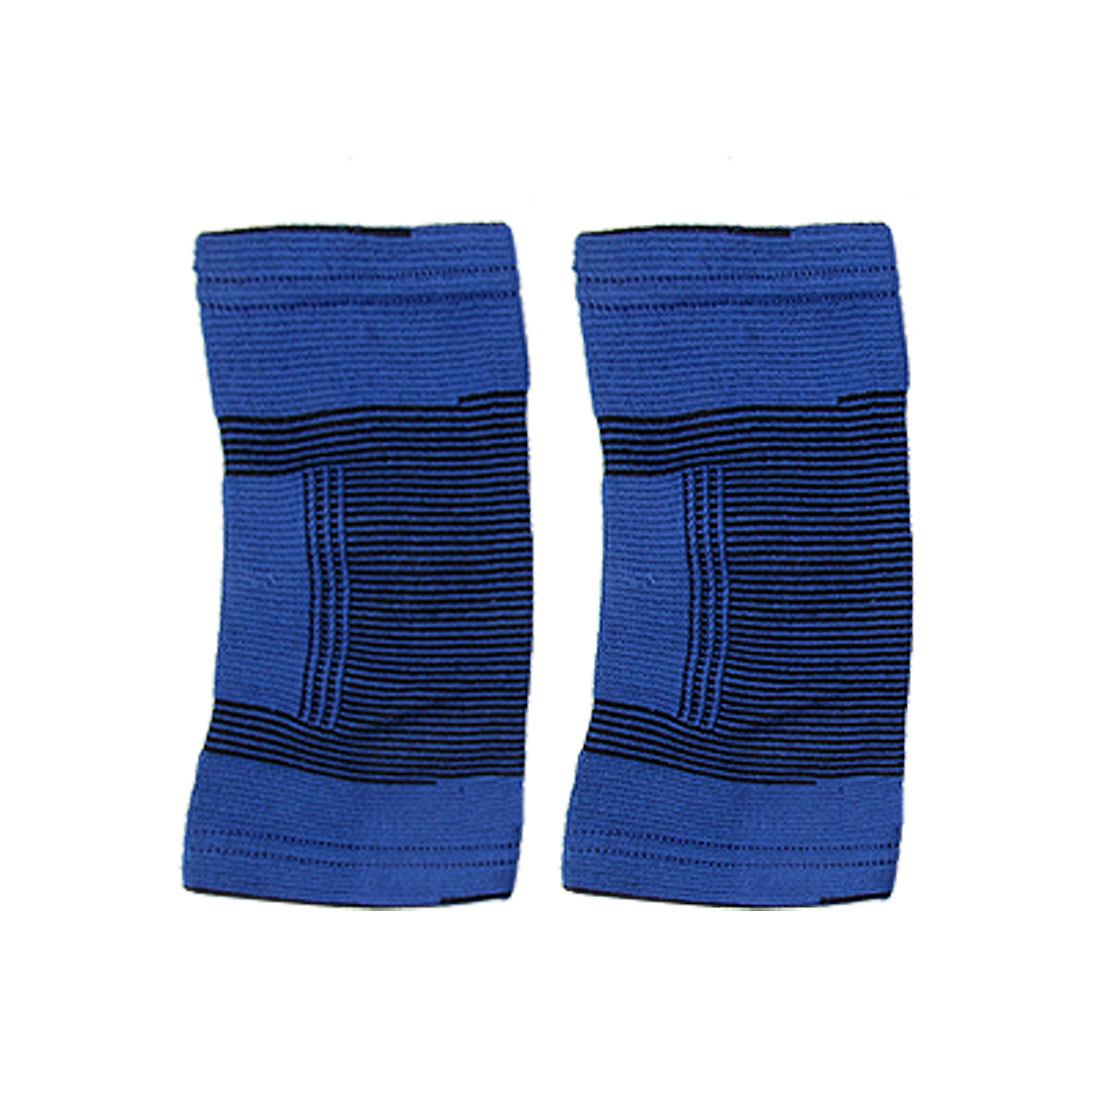 2 Pcs Blue Black Sports Fitness Striped Elastic Elbow Support Protector